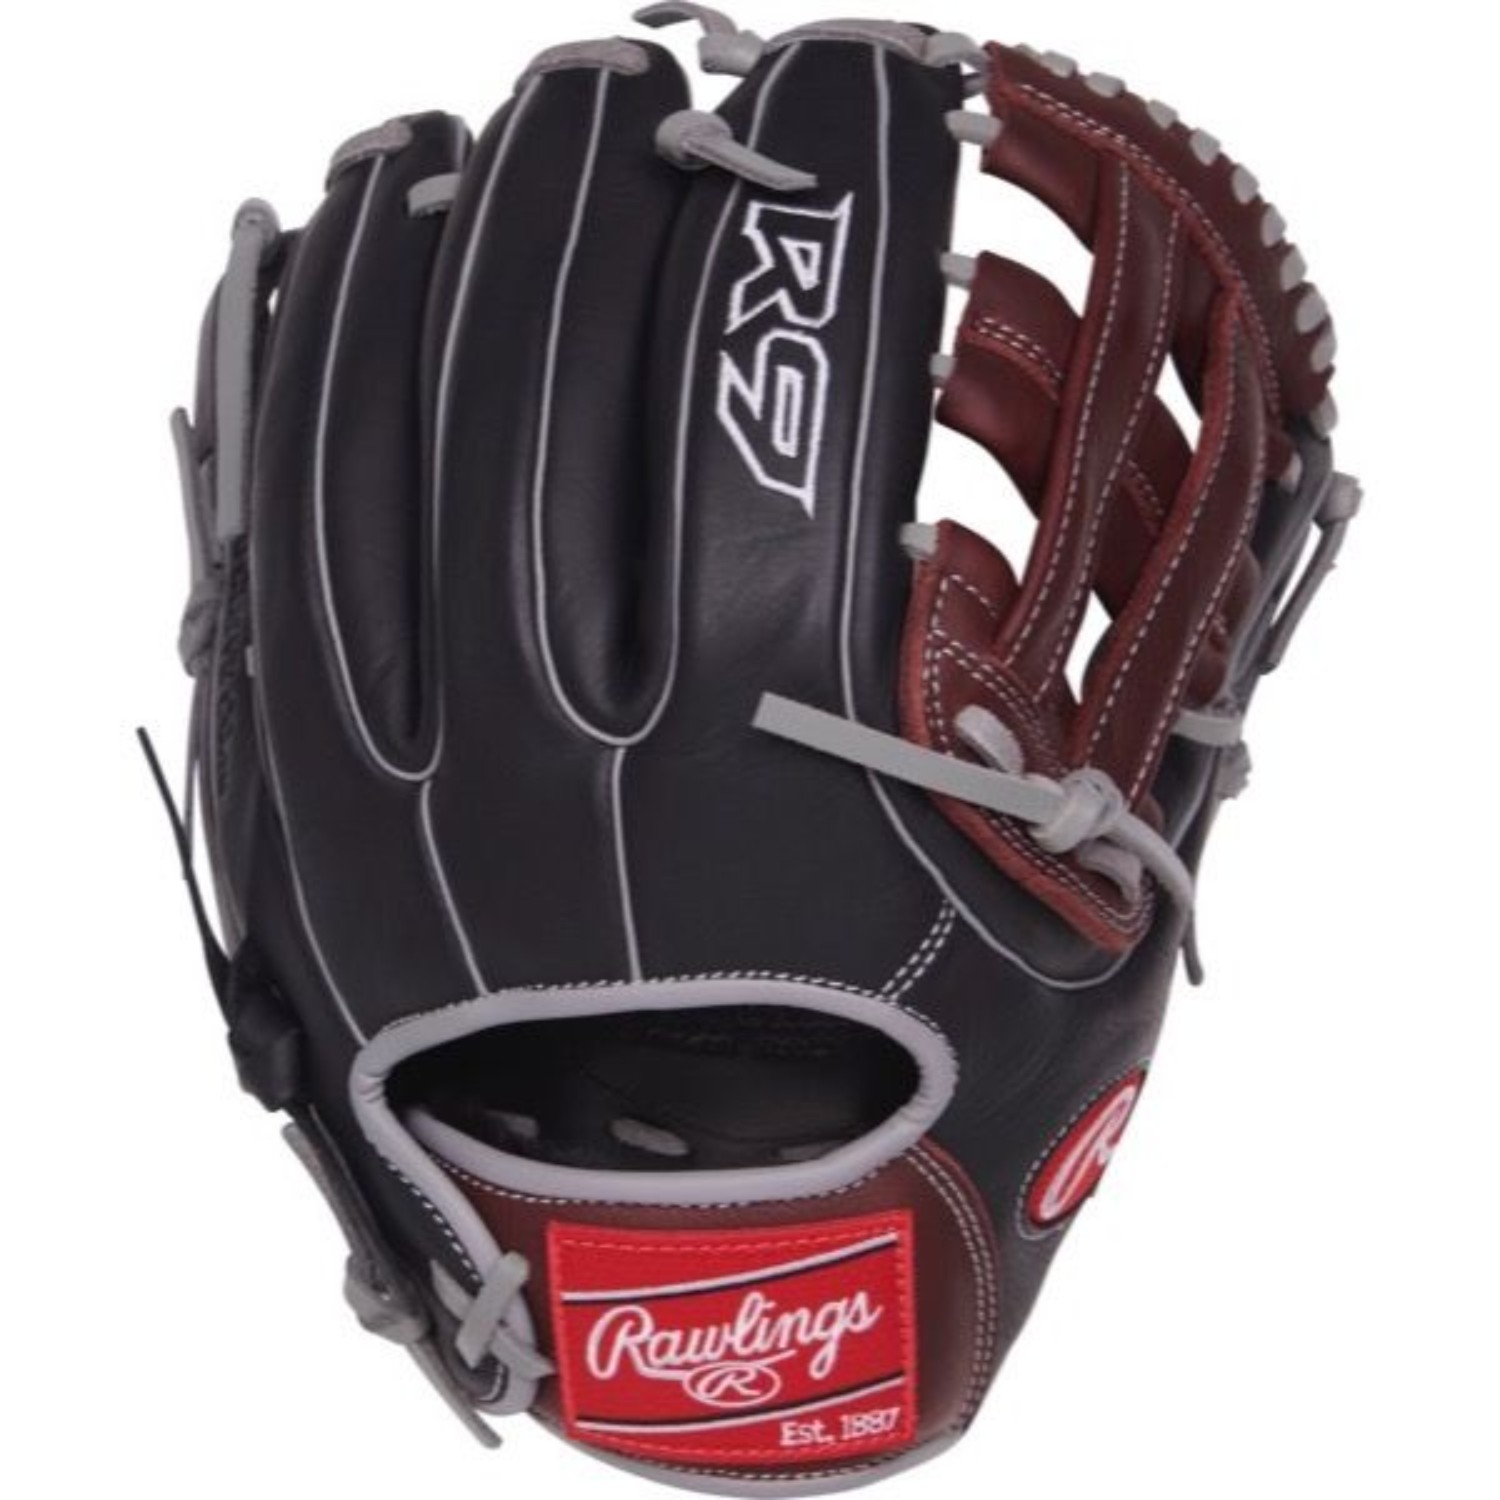 "Rawlings 11.75"" R9 Series Baseball Glove, Right Hand Throw"